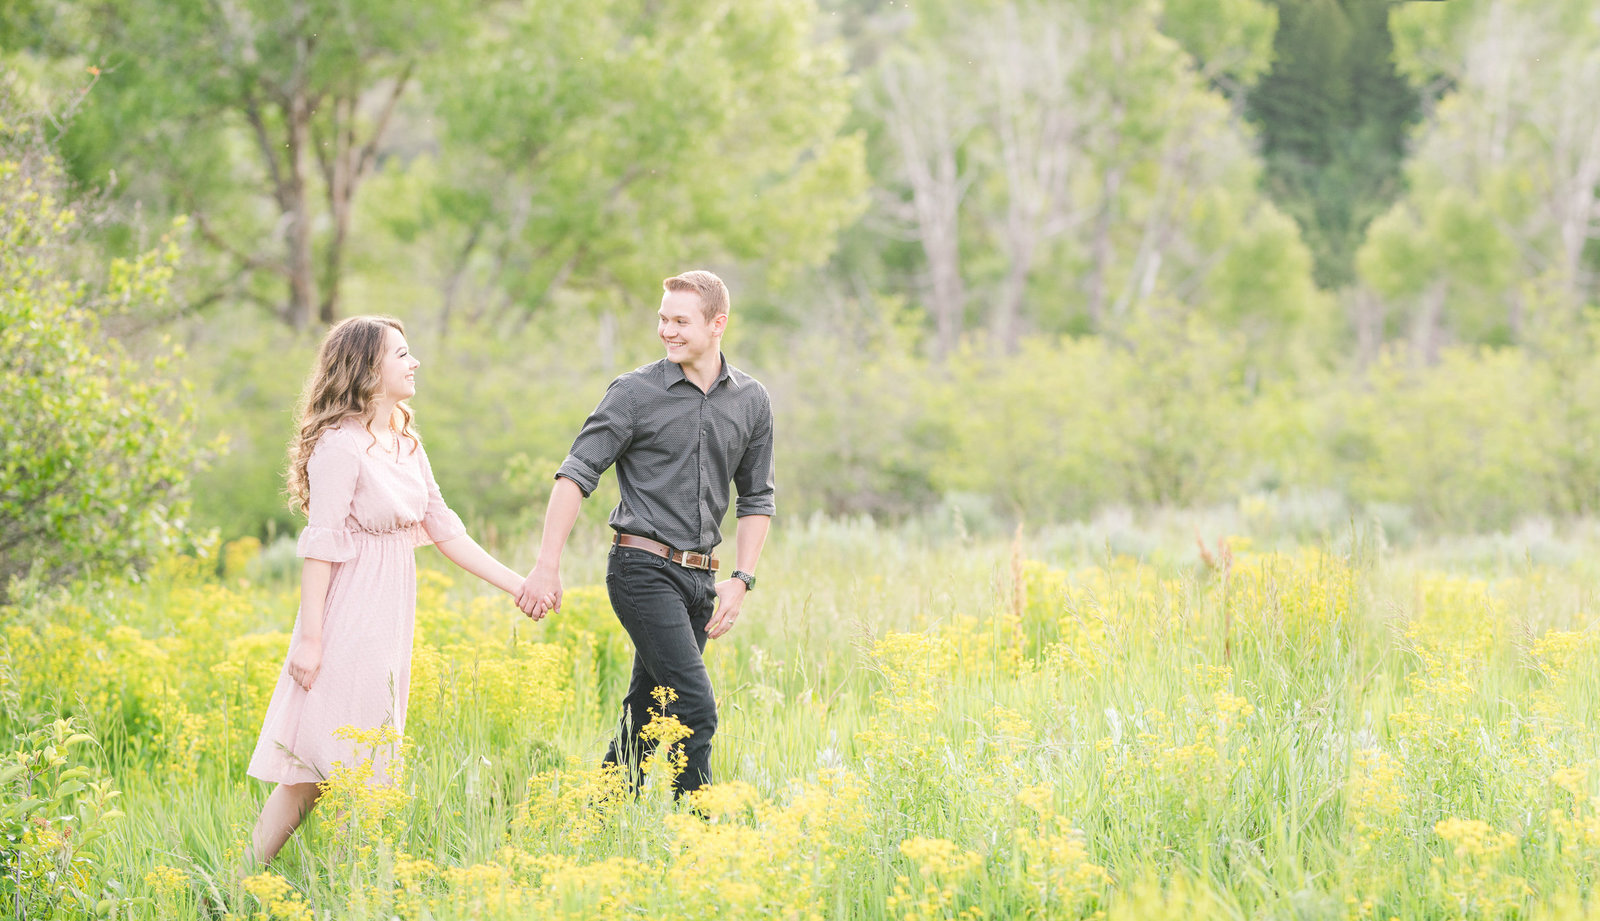 Utah Wedding Photographers - Jessie and Dallin Photography RE-043 Cover